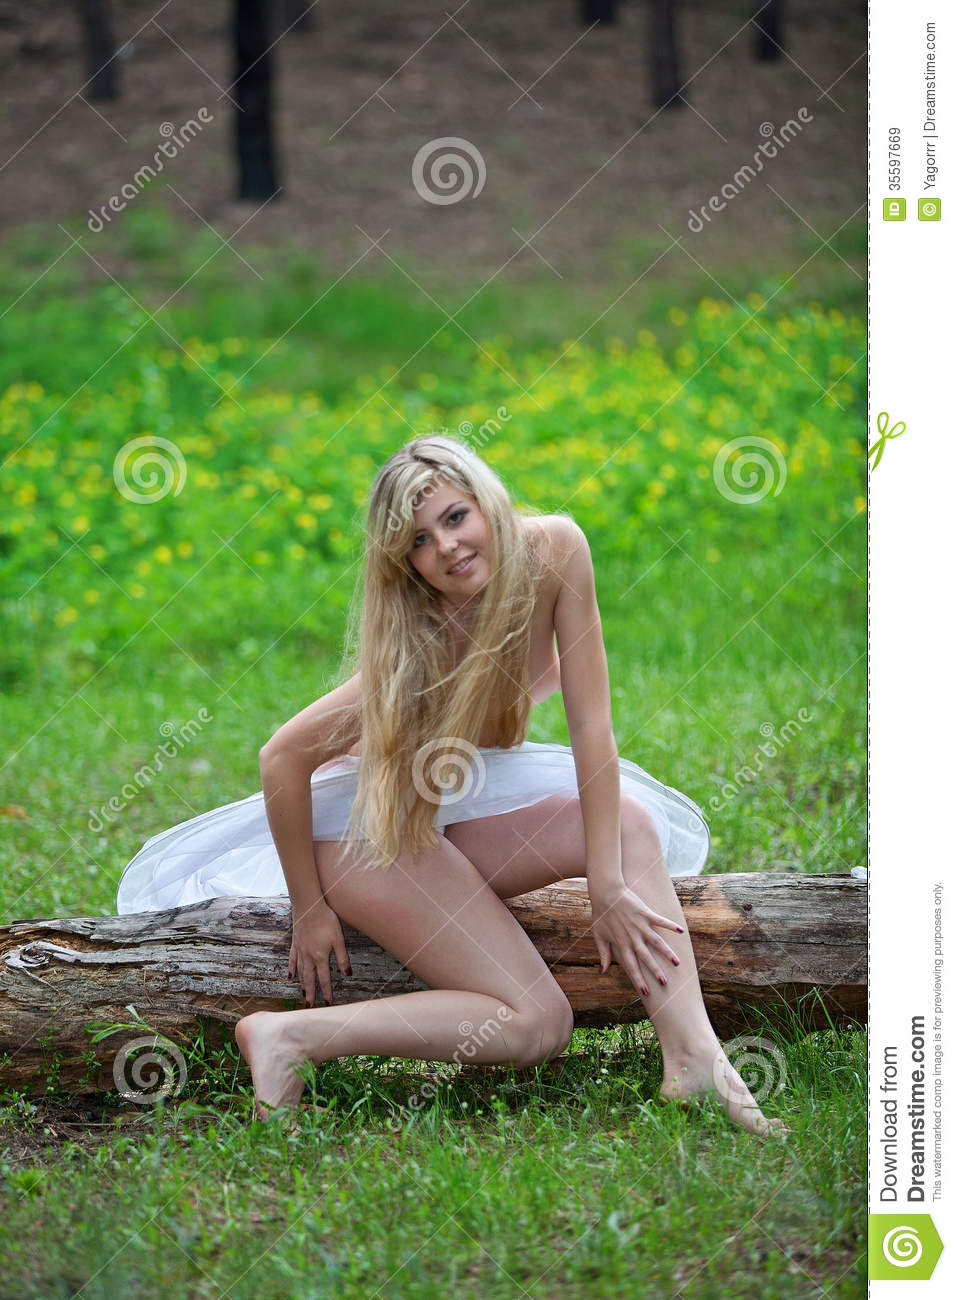 beautiful girl topless on a log in the forest stock image - image of